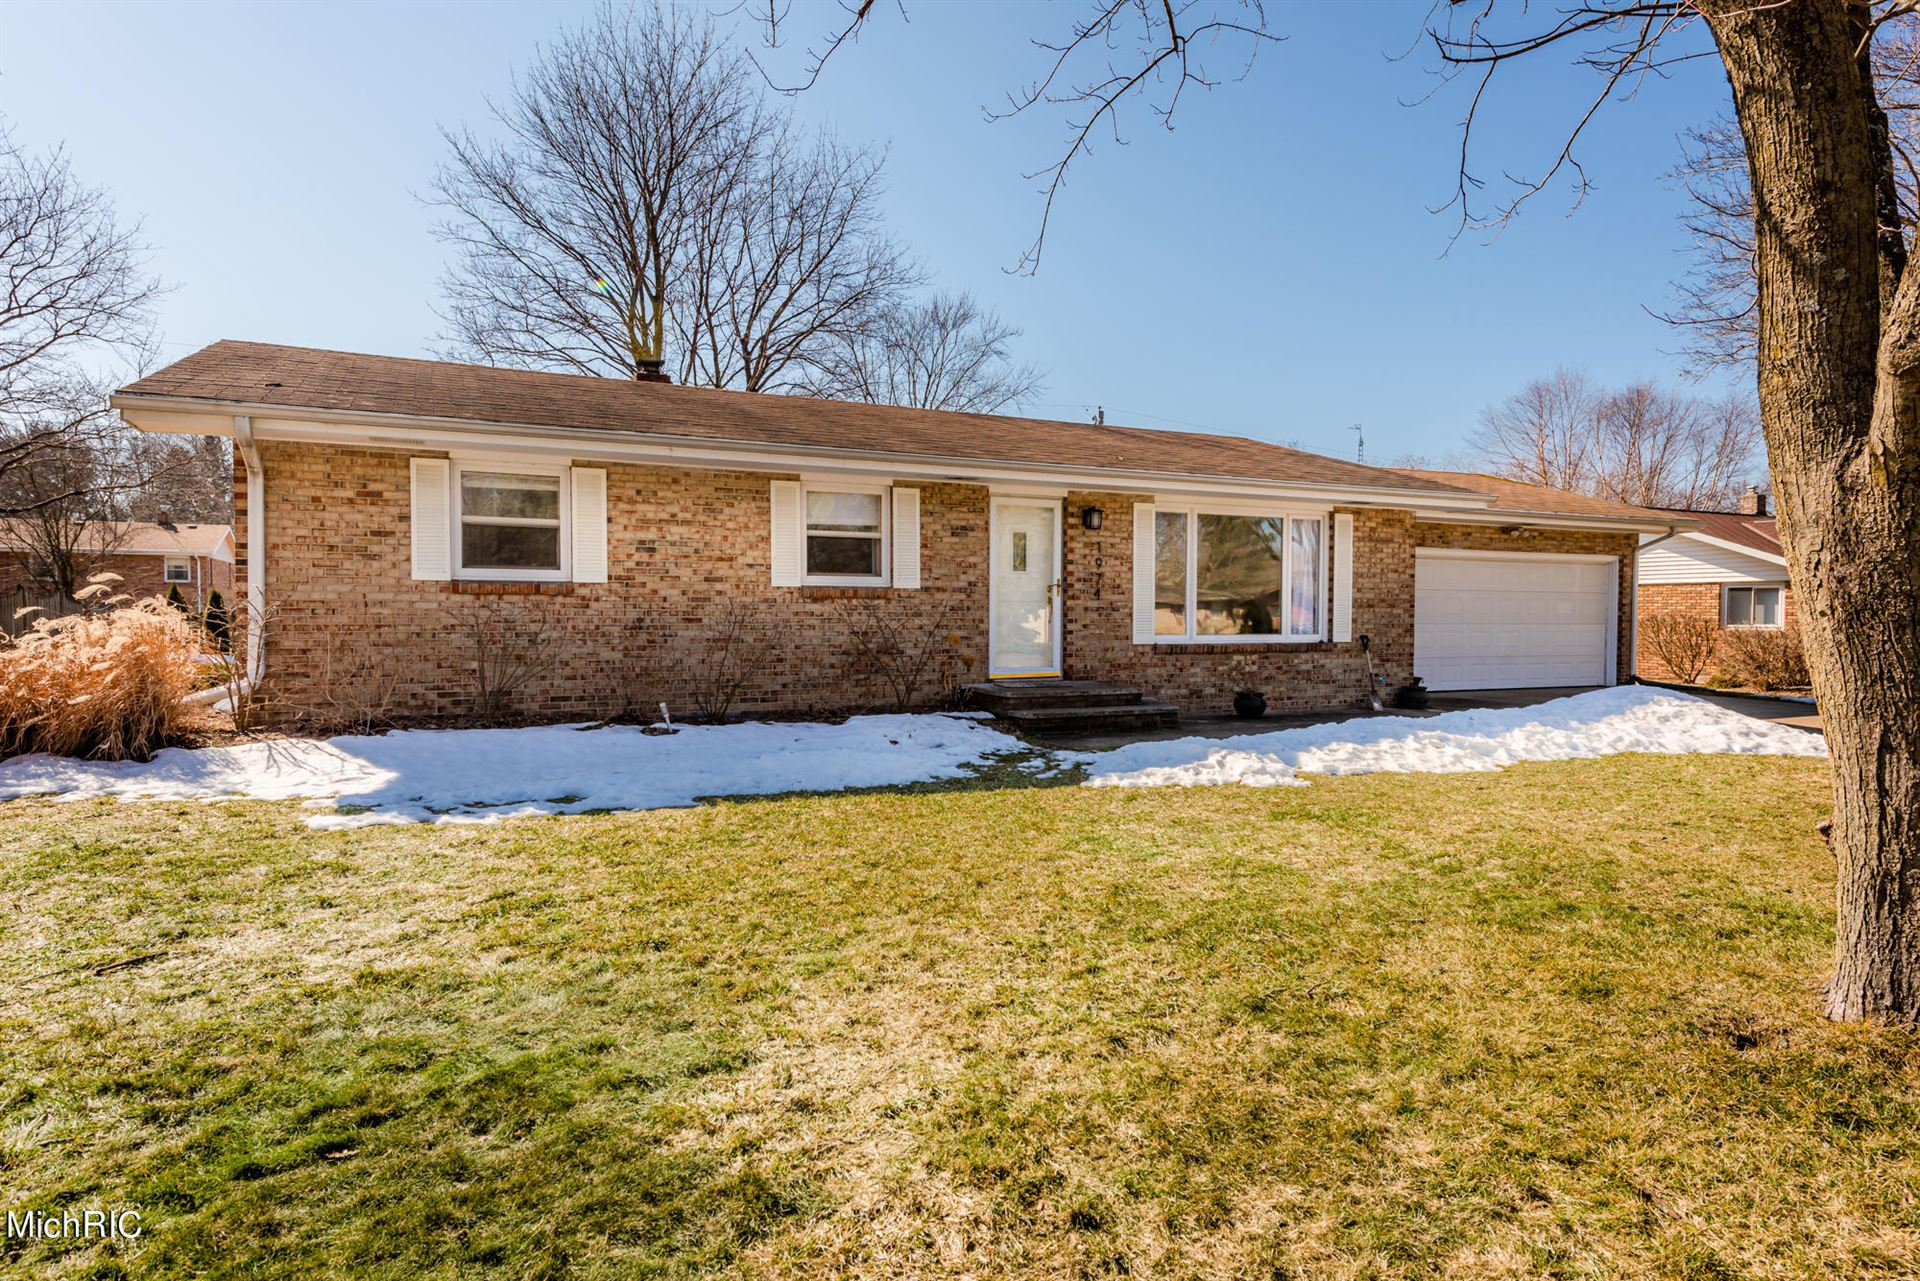 1974 Anthony Drive, Saint Joseph, MI 49085 - MLS#: 21006683